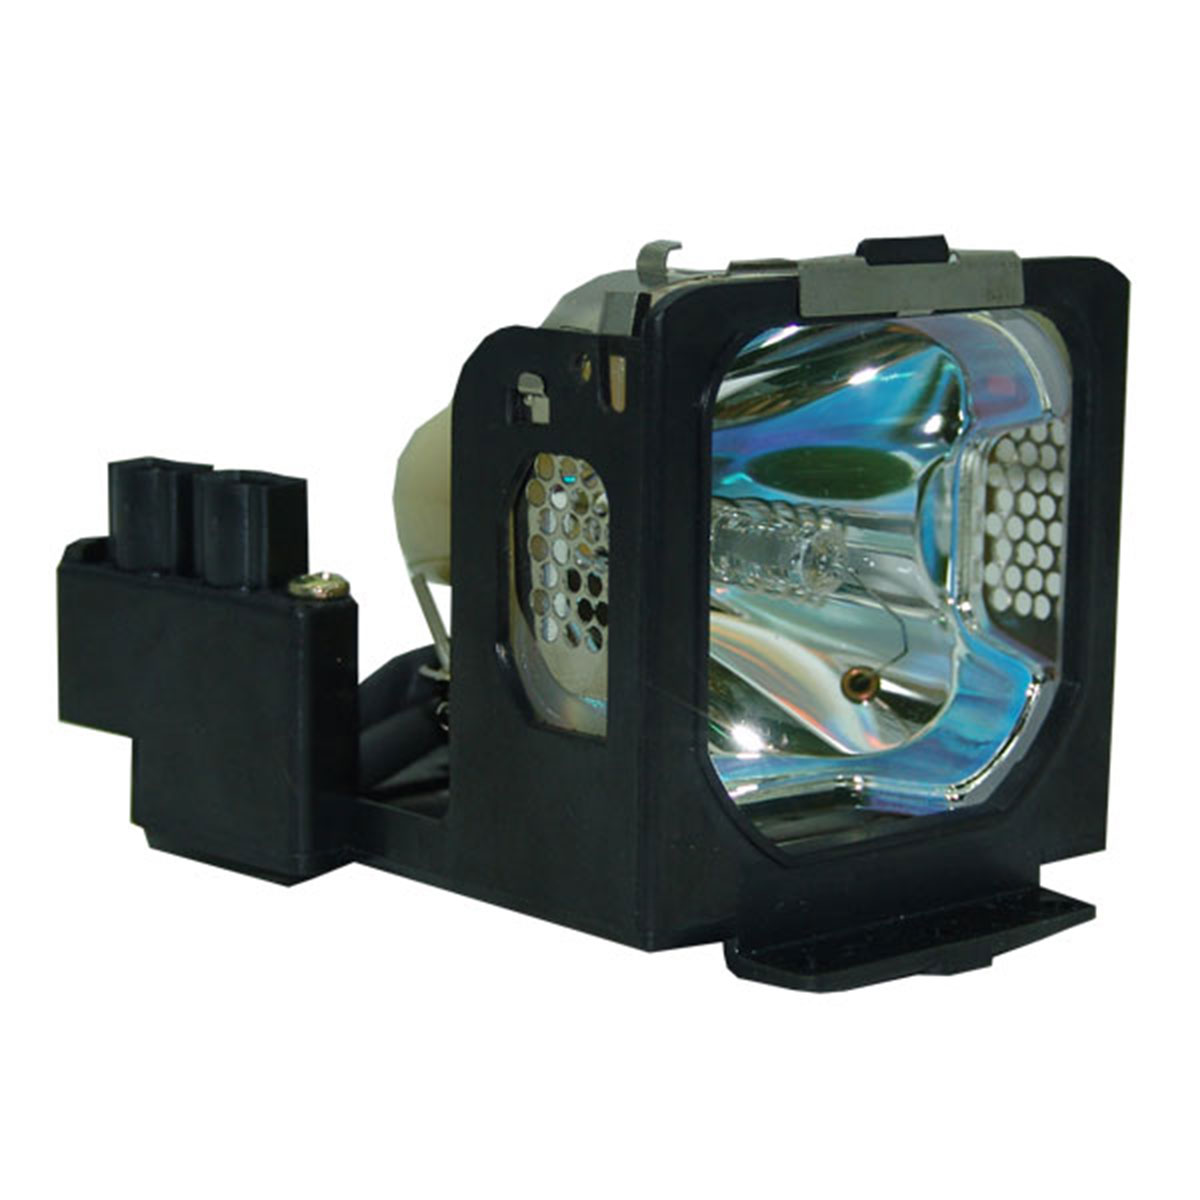 Original Philips Projector Lamp Replacement with Housing for Panasonic ET-SLMP37 - image 4 of 5